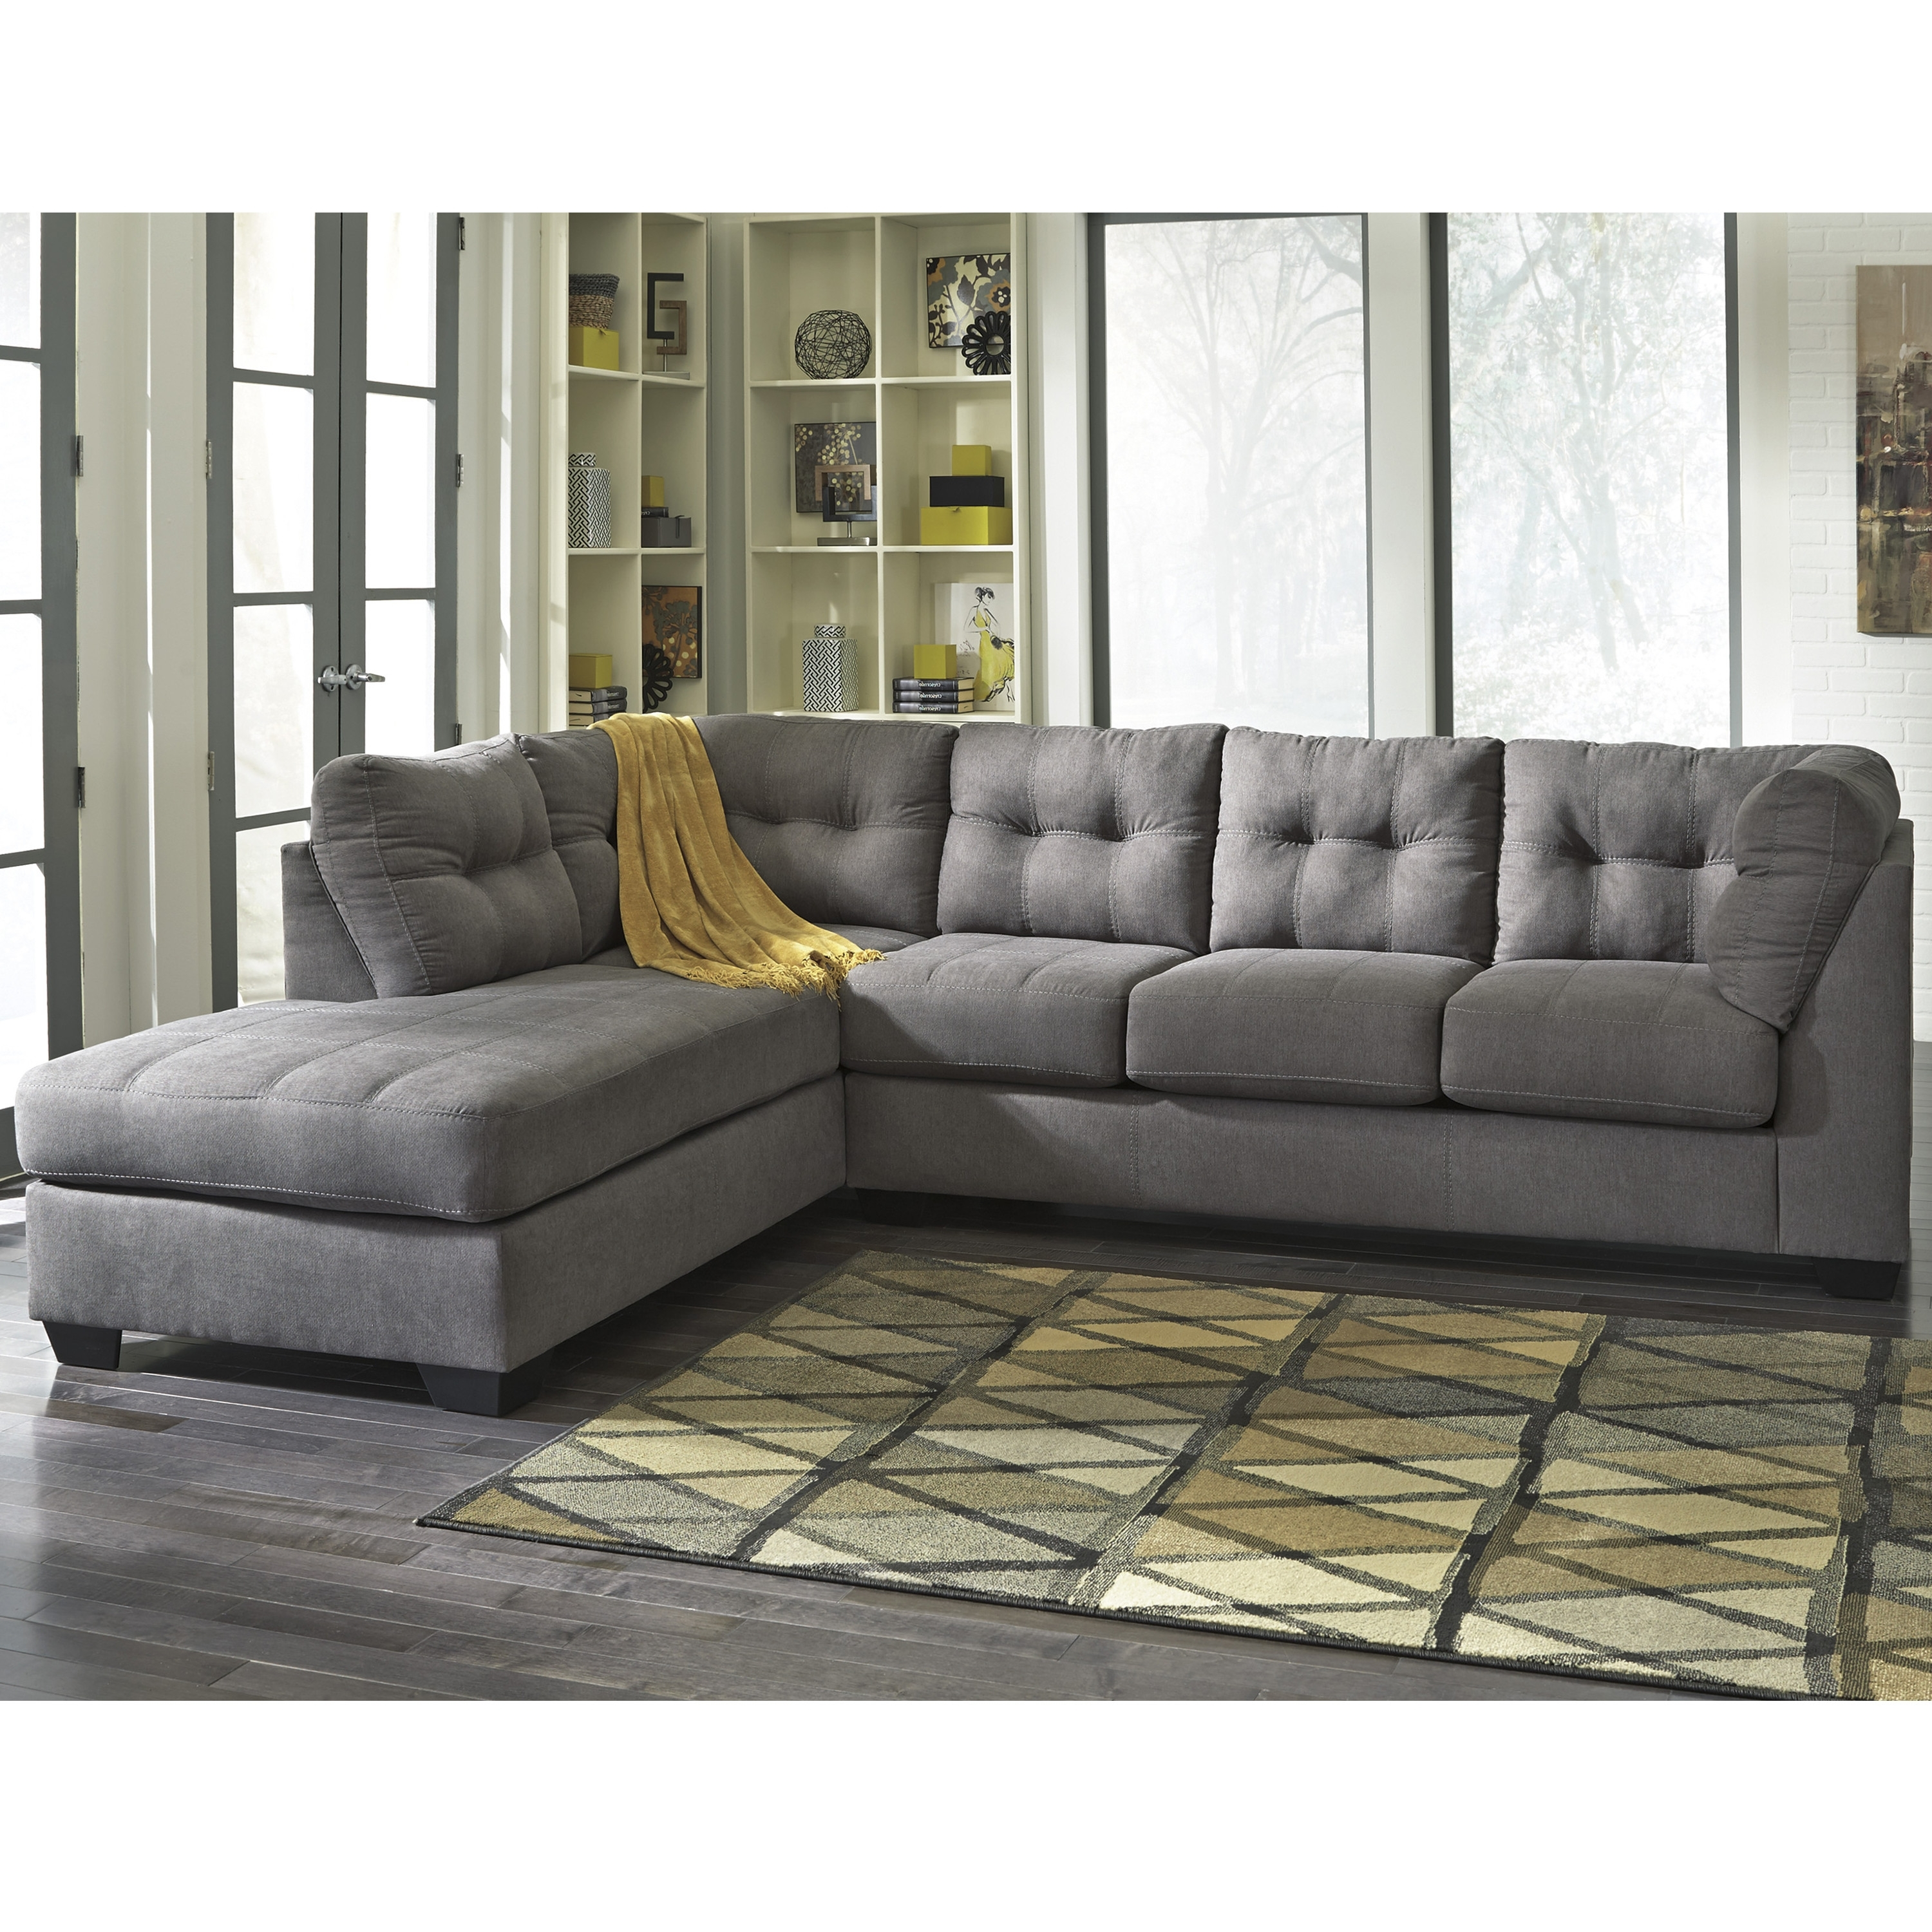 Furniture: Cool Cheap Sectional For Elegant Living Room Design With Regard To Lucy Dark Grey 2 Piece Sectionals With Laf Chaise (View 15 of 25)